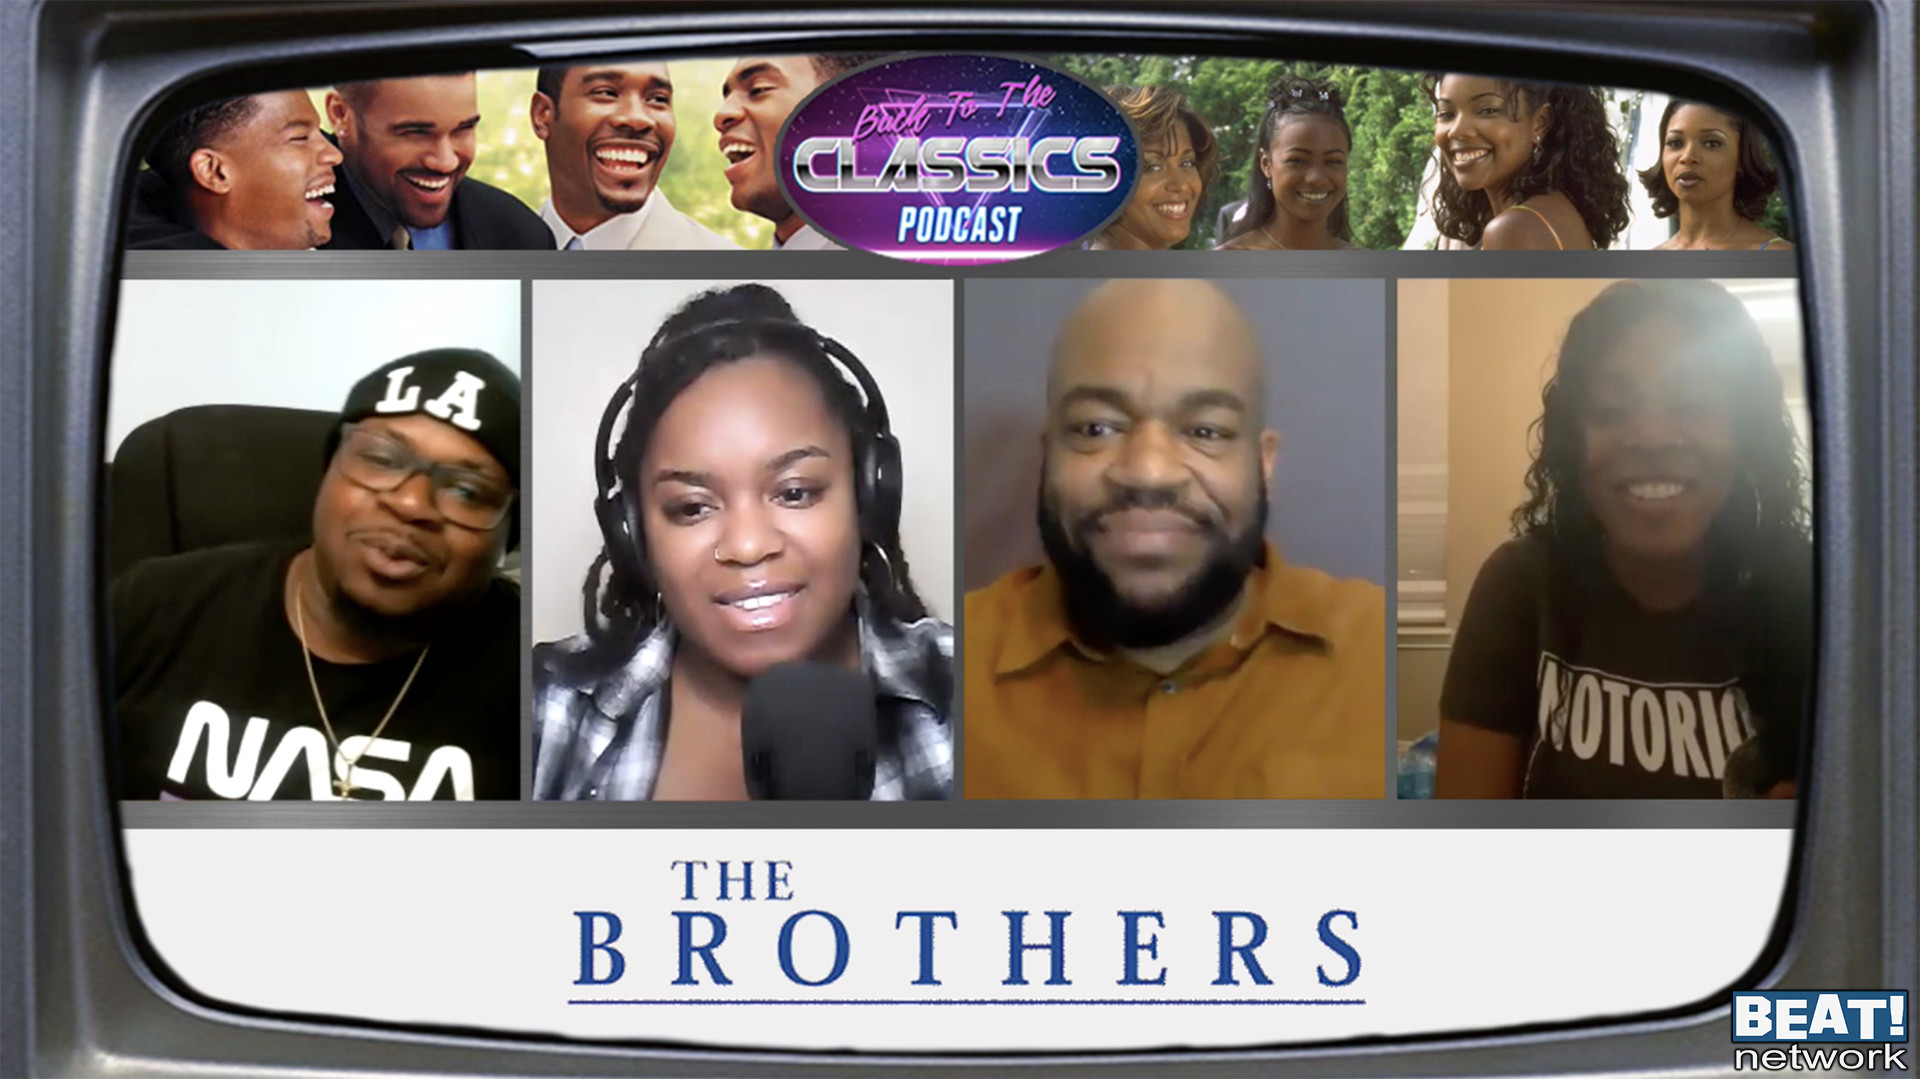 Back to 'The Brothers'